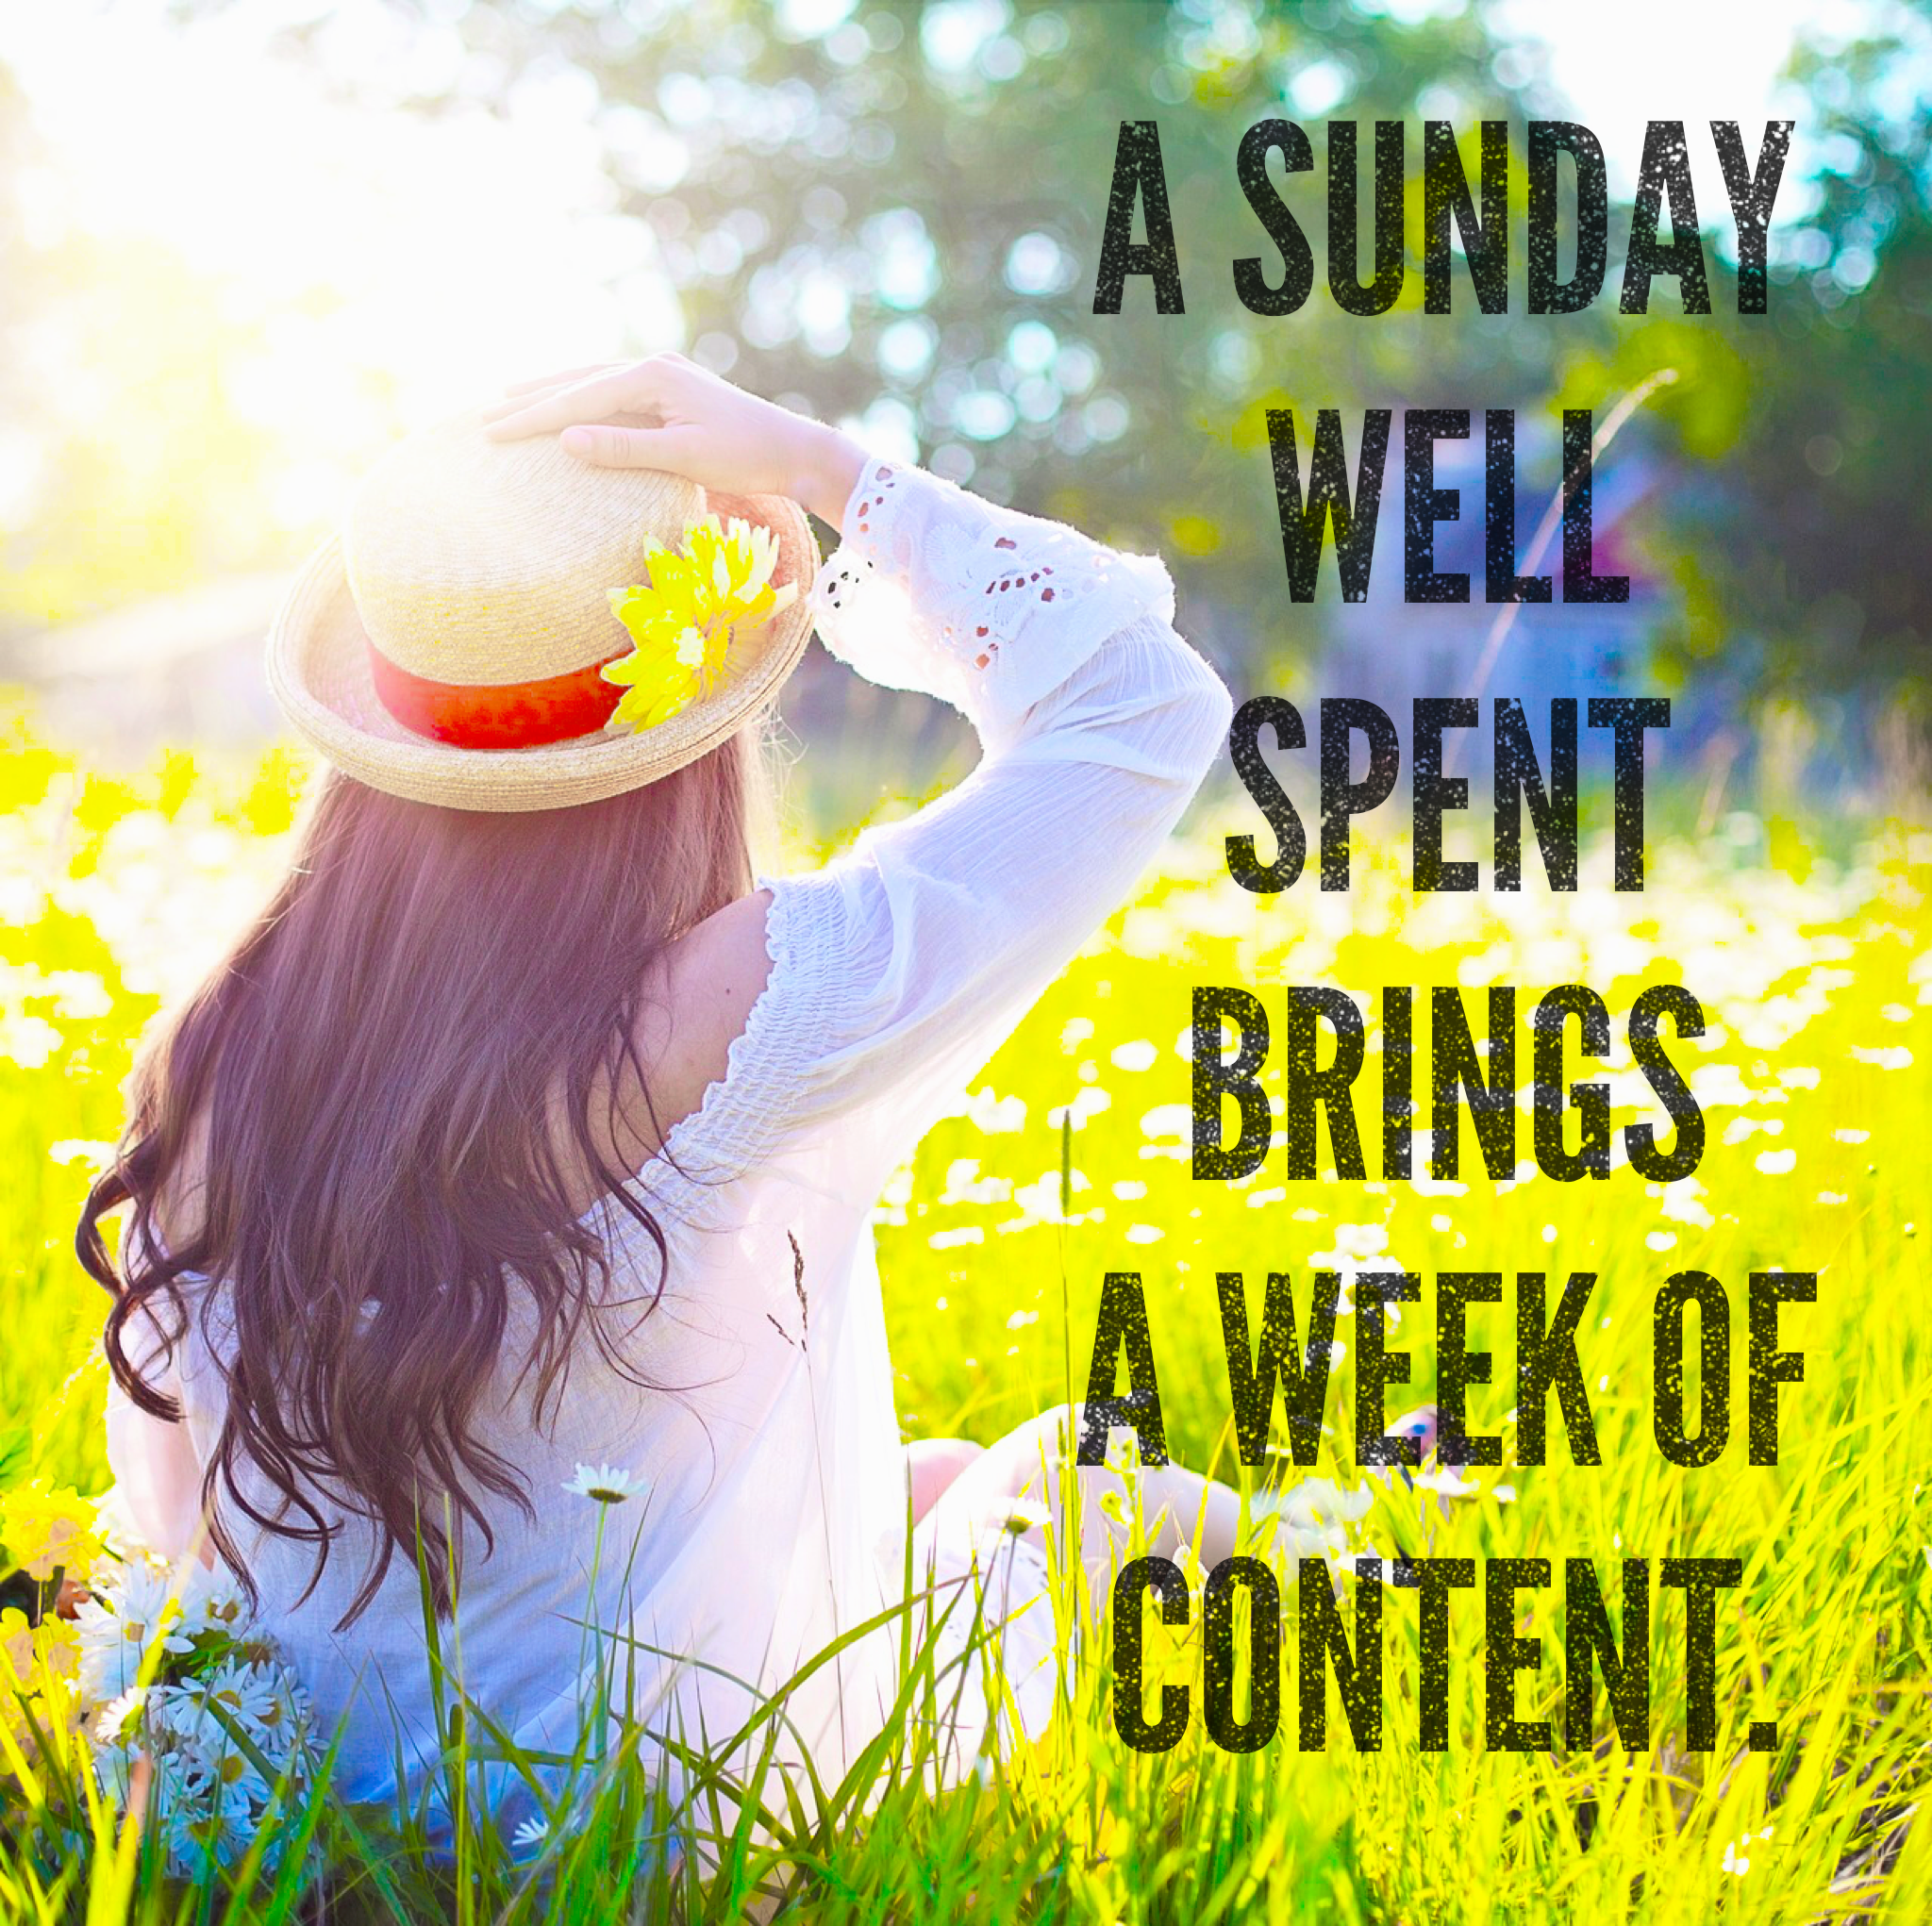 Its Sunday Pictures, Photos, and Images for Facebook